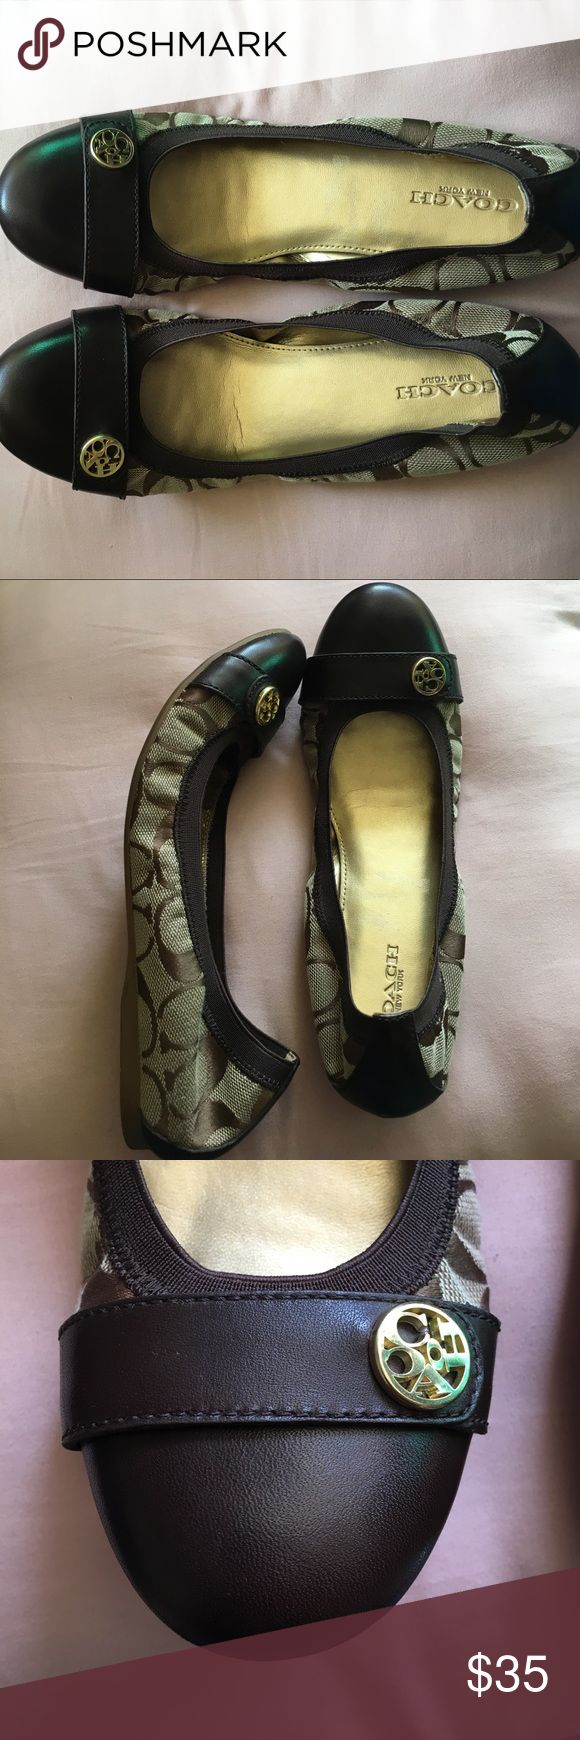 Coach Flats Coach flats. In great conditions. Used only twice. Coach Shoes Flats & Loafers